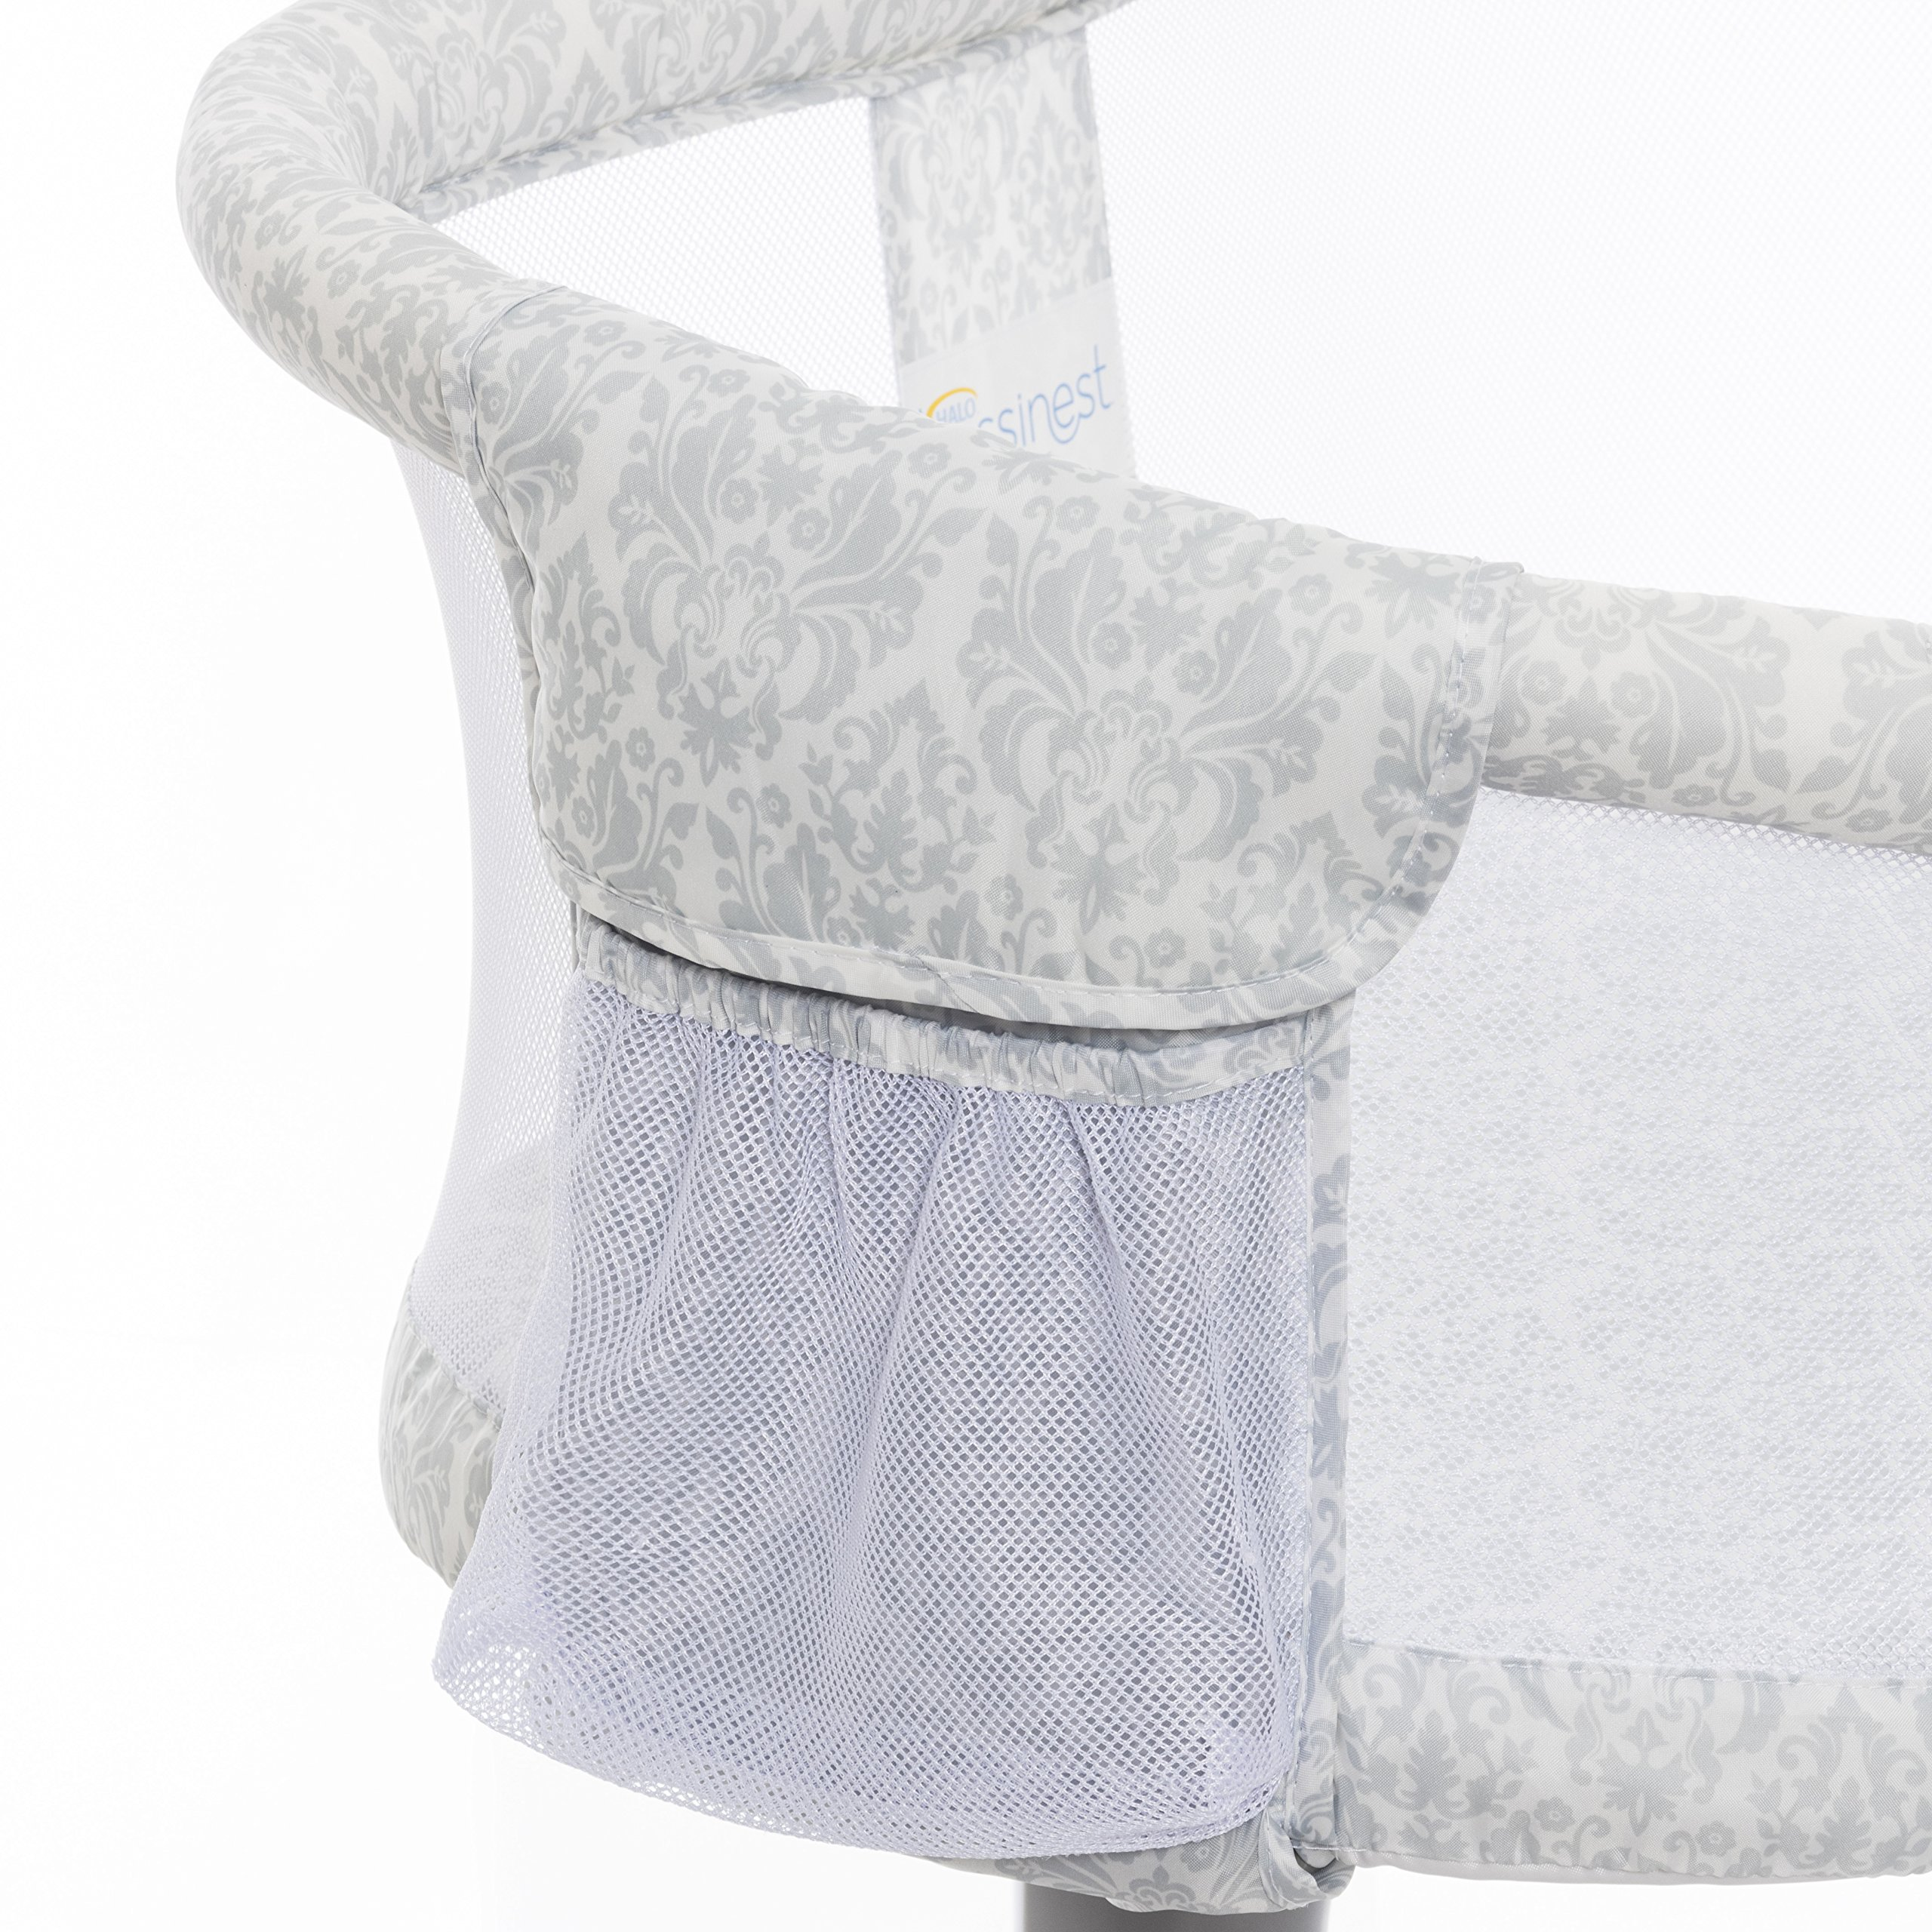 HALO Bassinest Swivel Sleeper – Premiere Series Bassinet by Halo (Image #9)